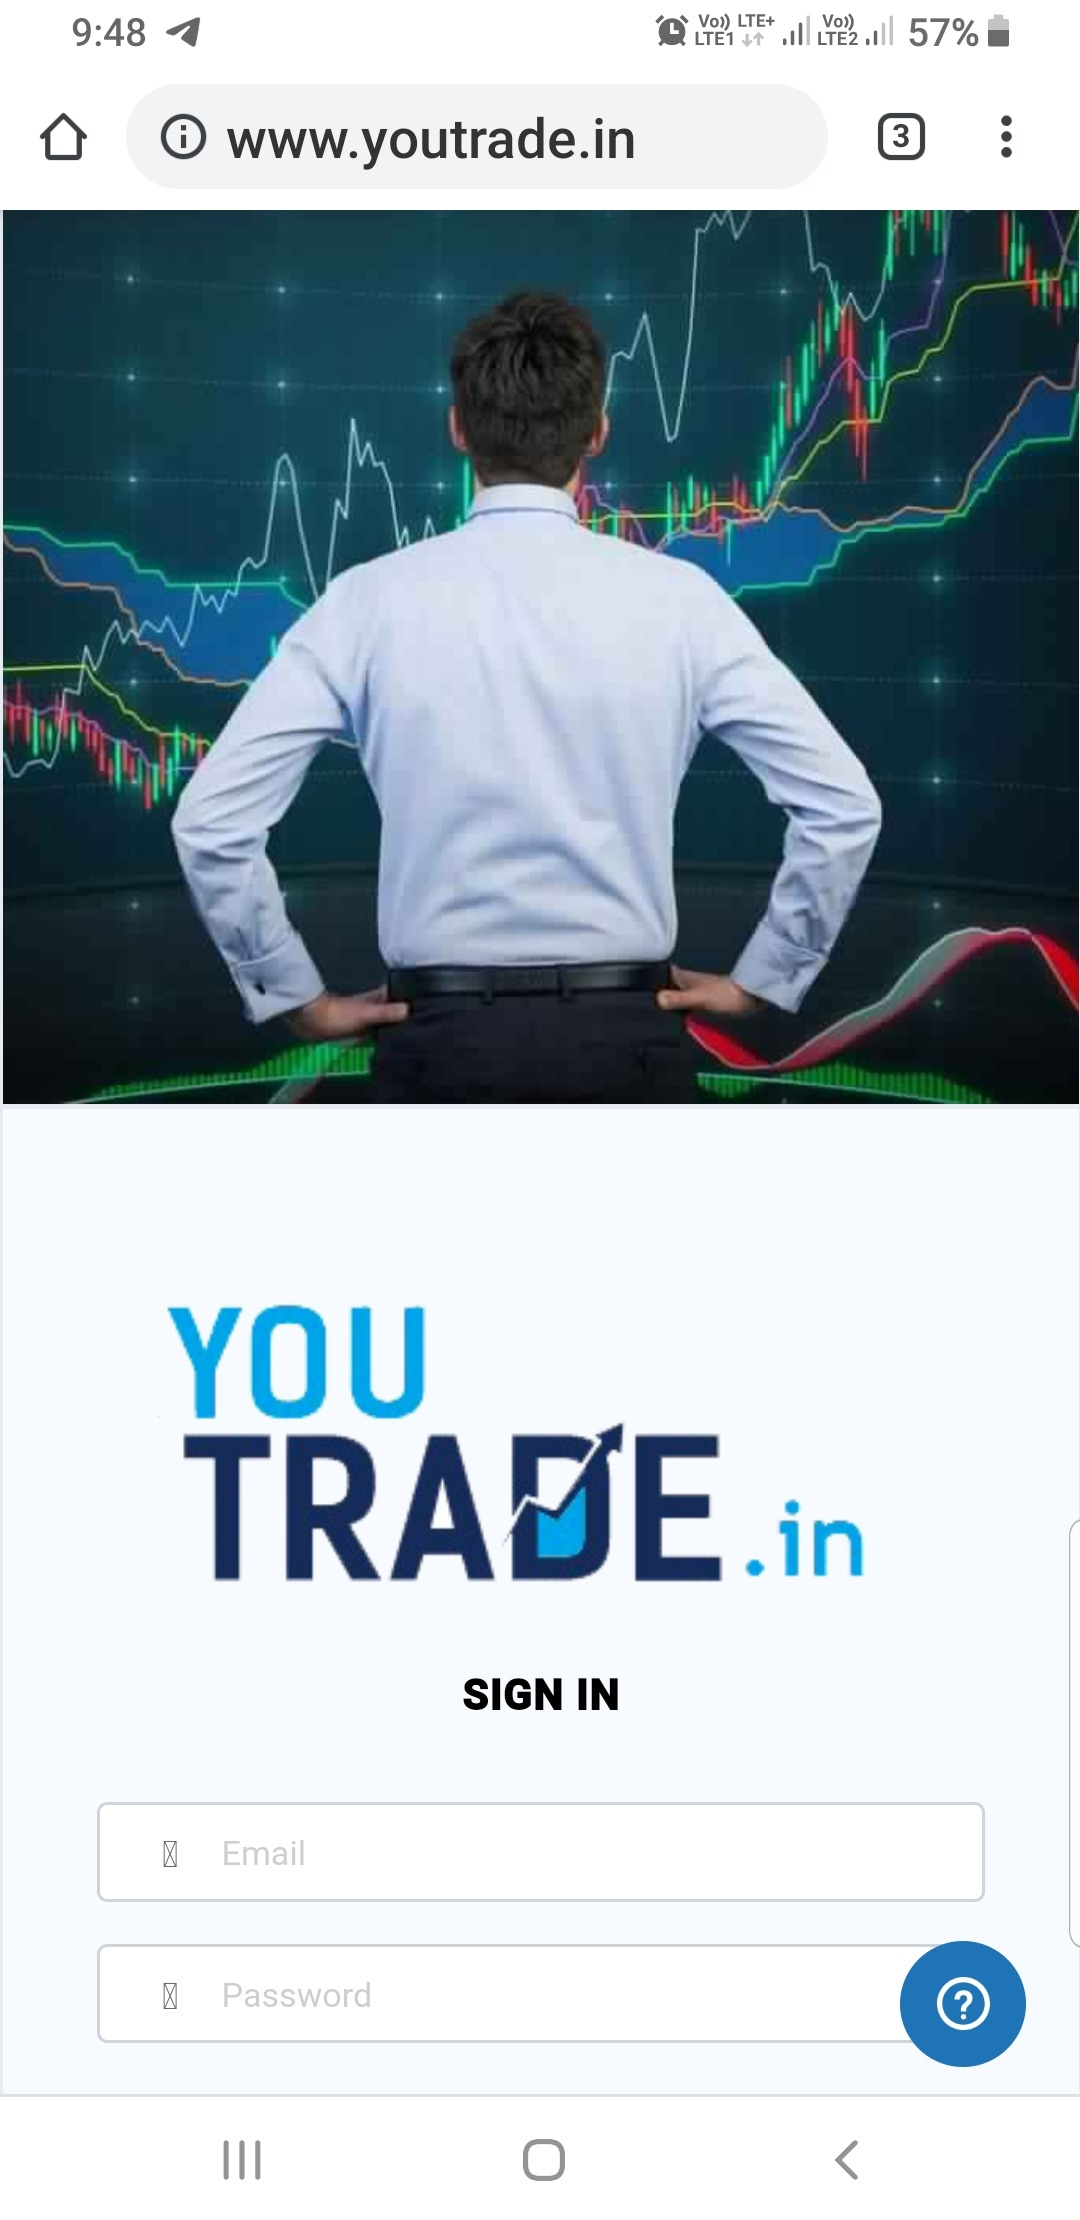 Youtrade.in